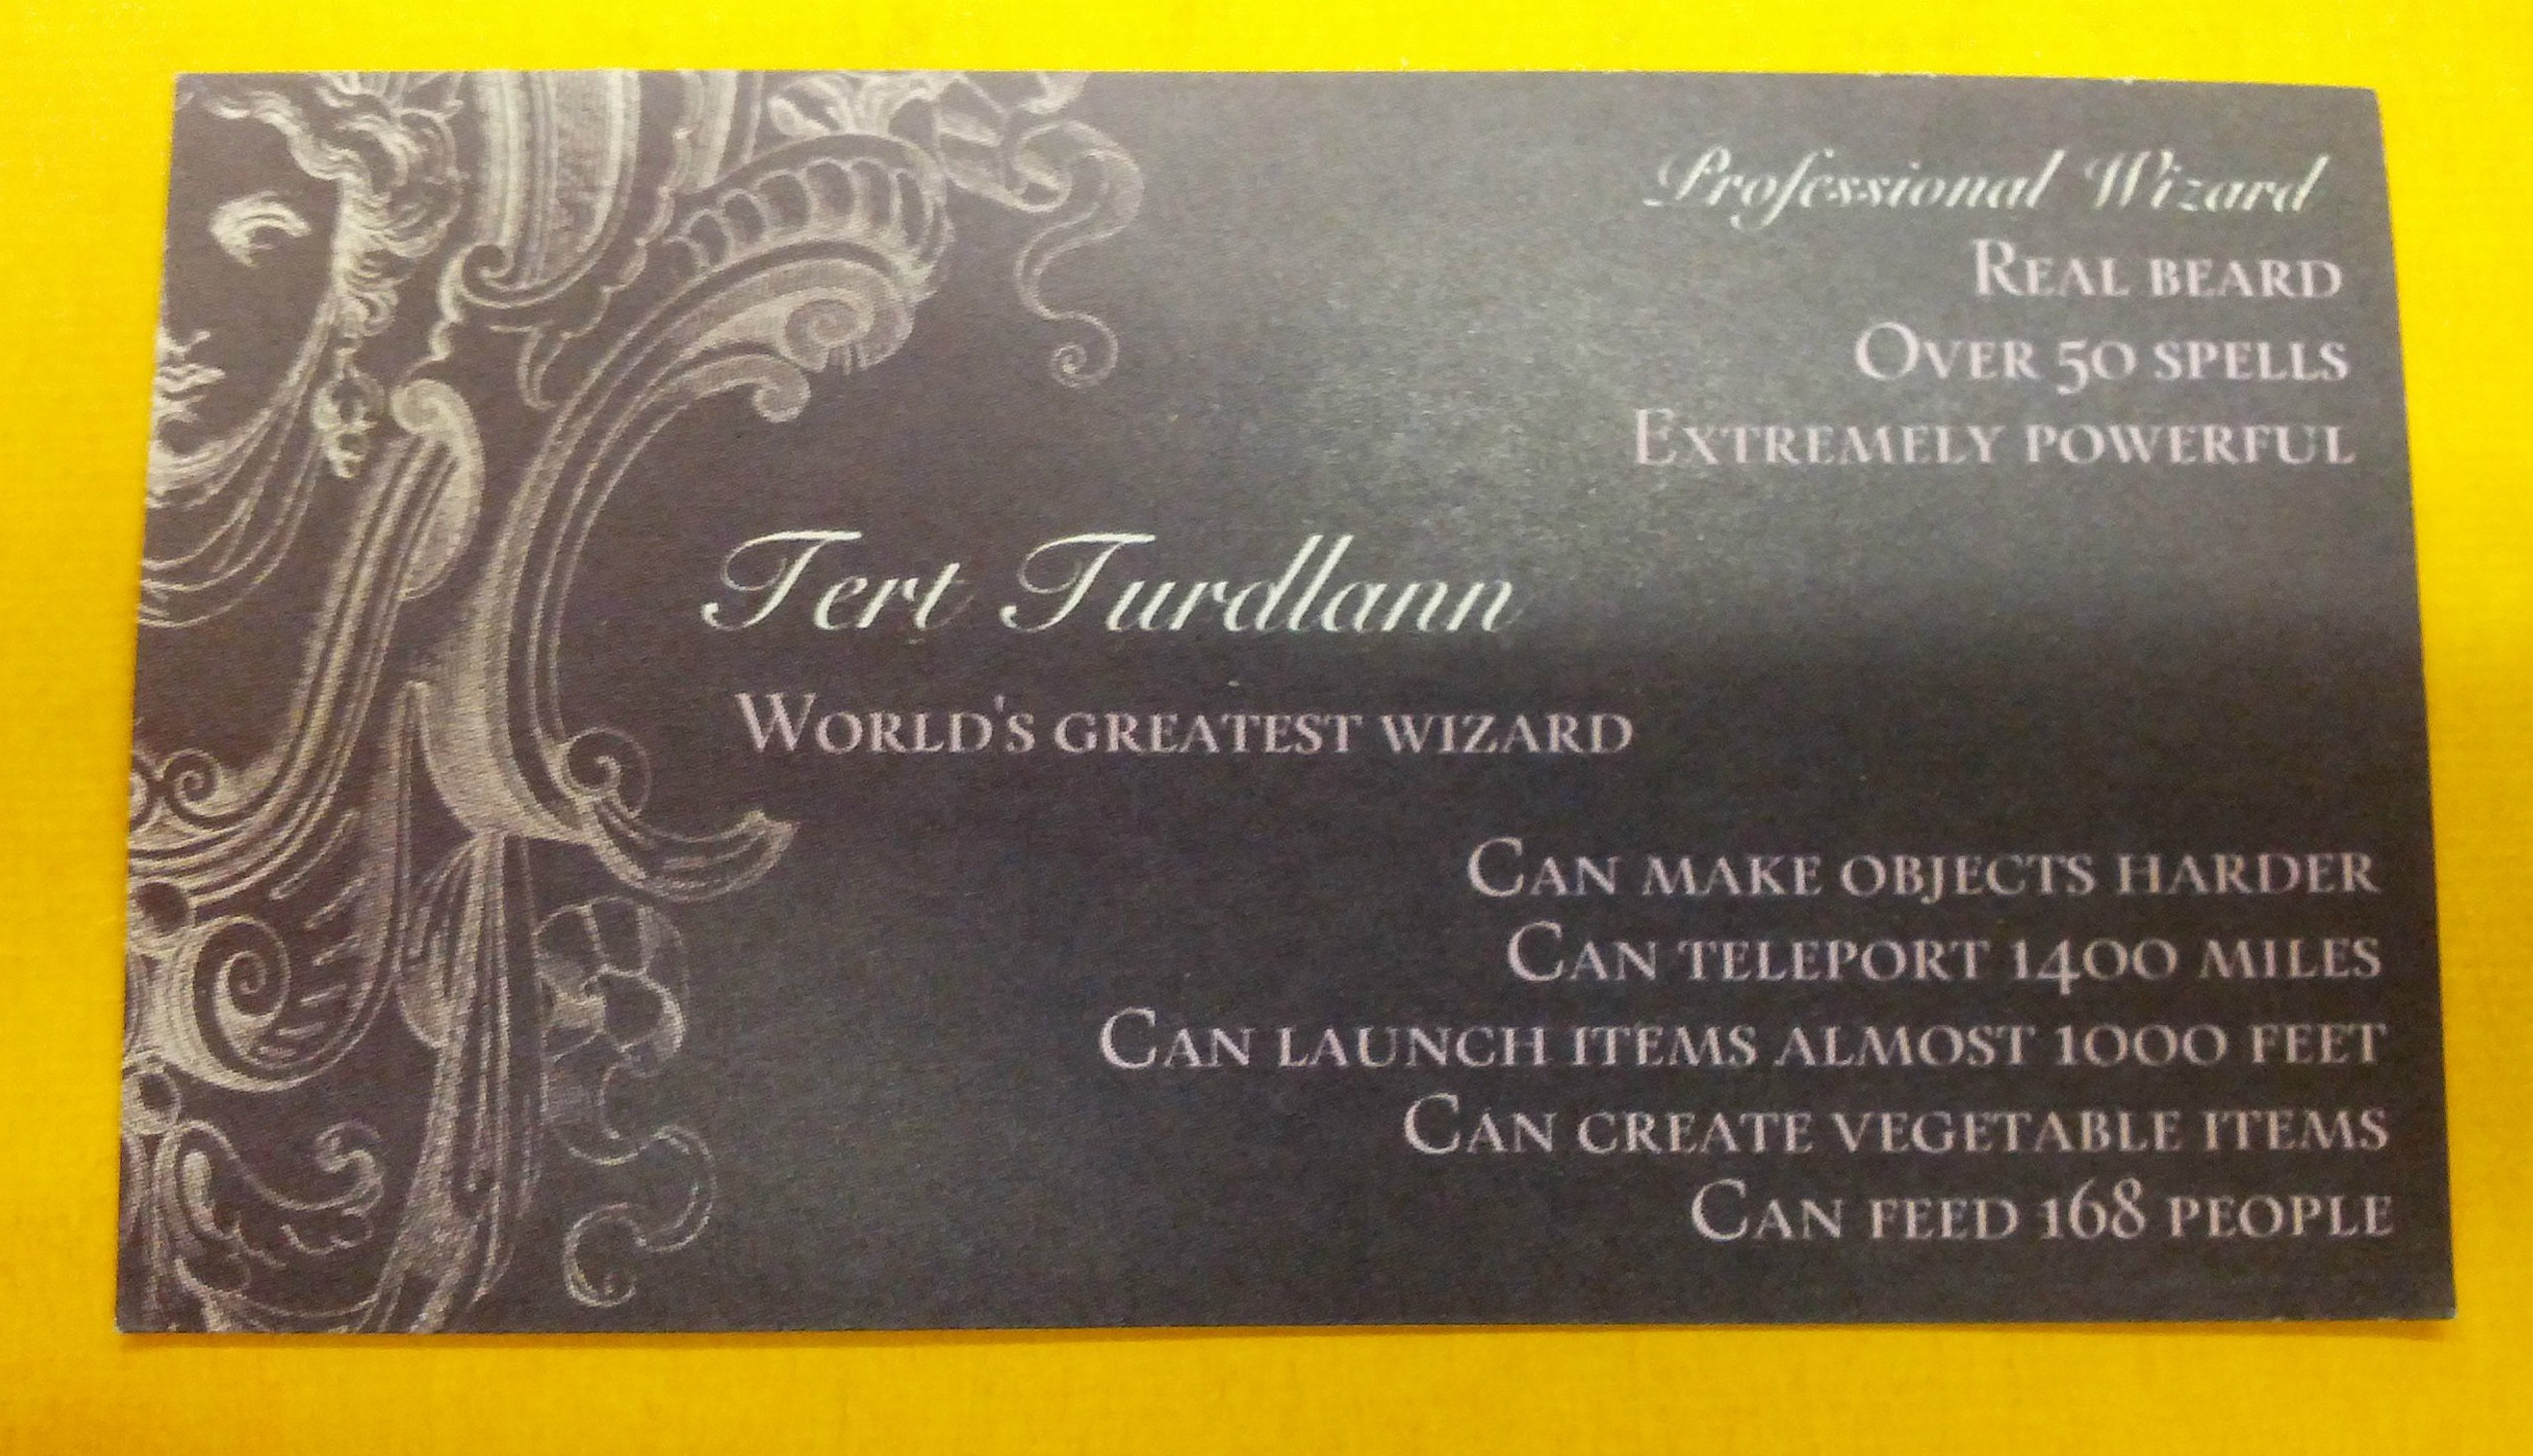 is it ok that these are the best business cards ever